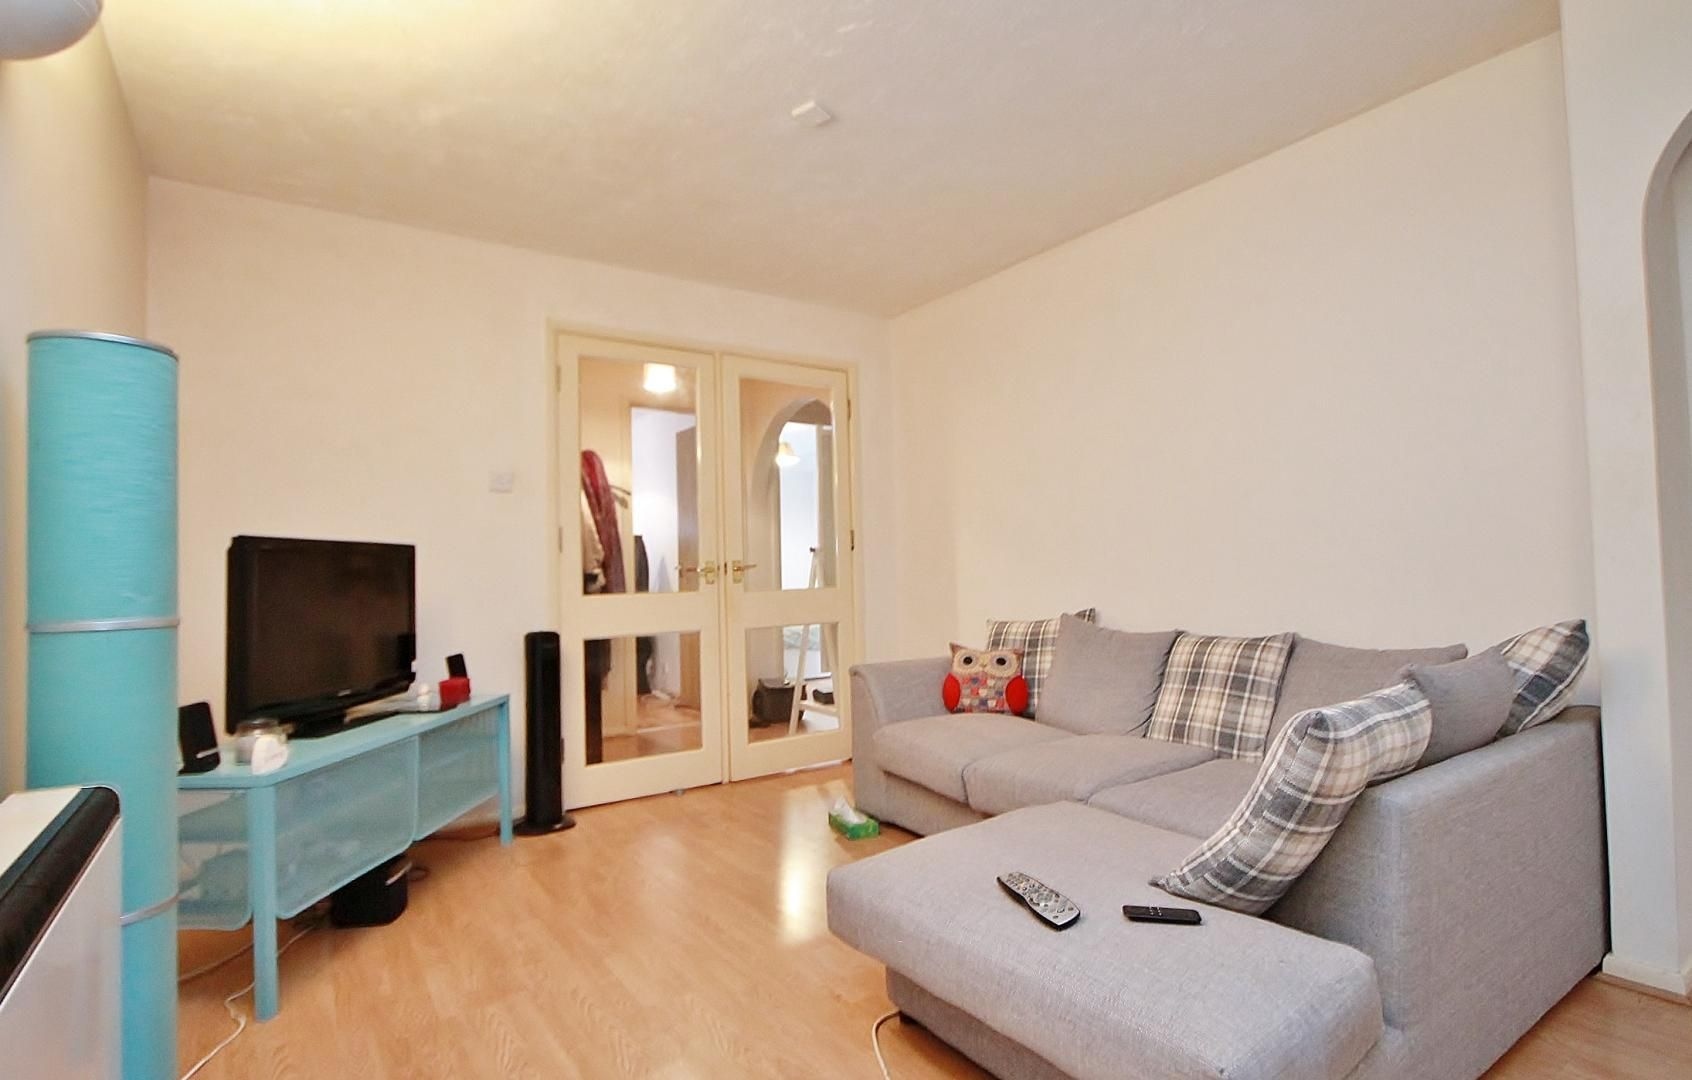 2 bed flat to rent in Tyndale Court, E14